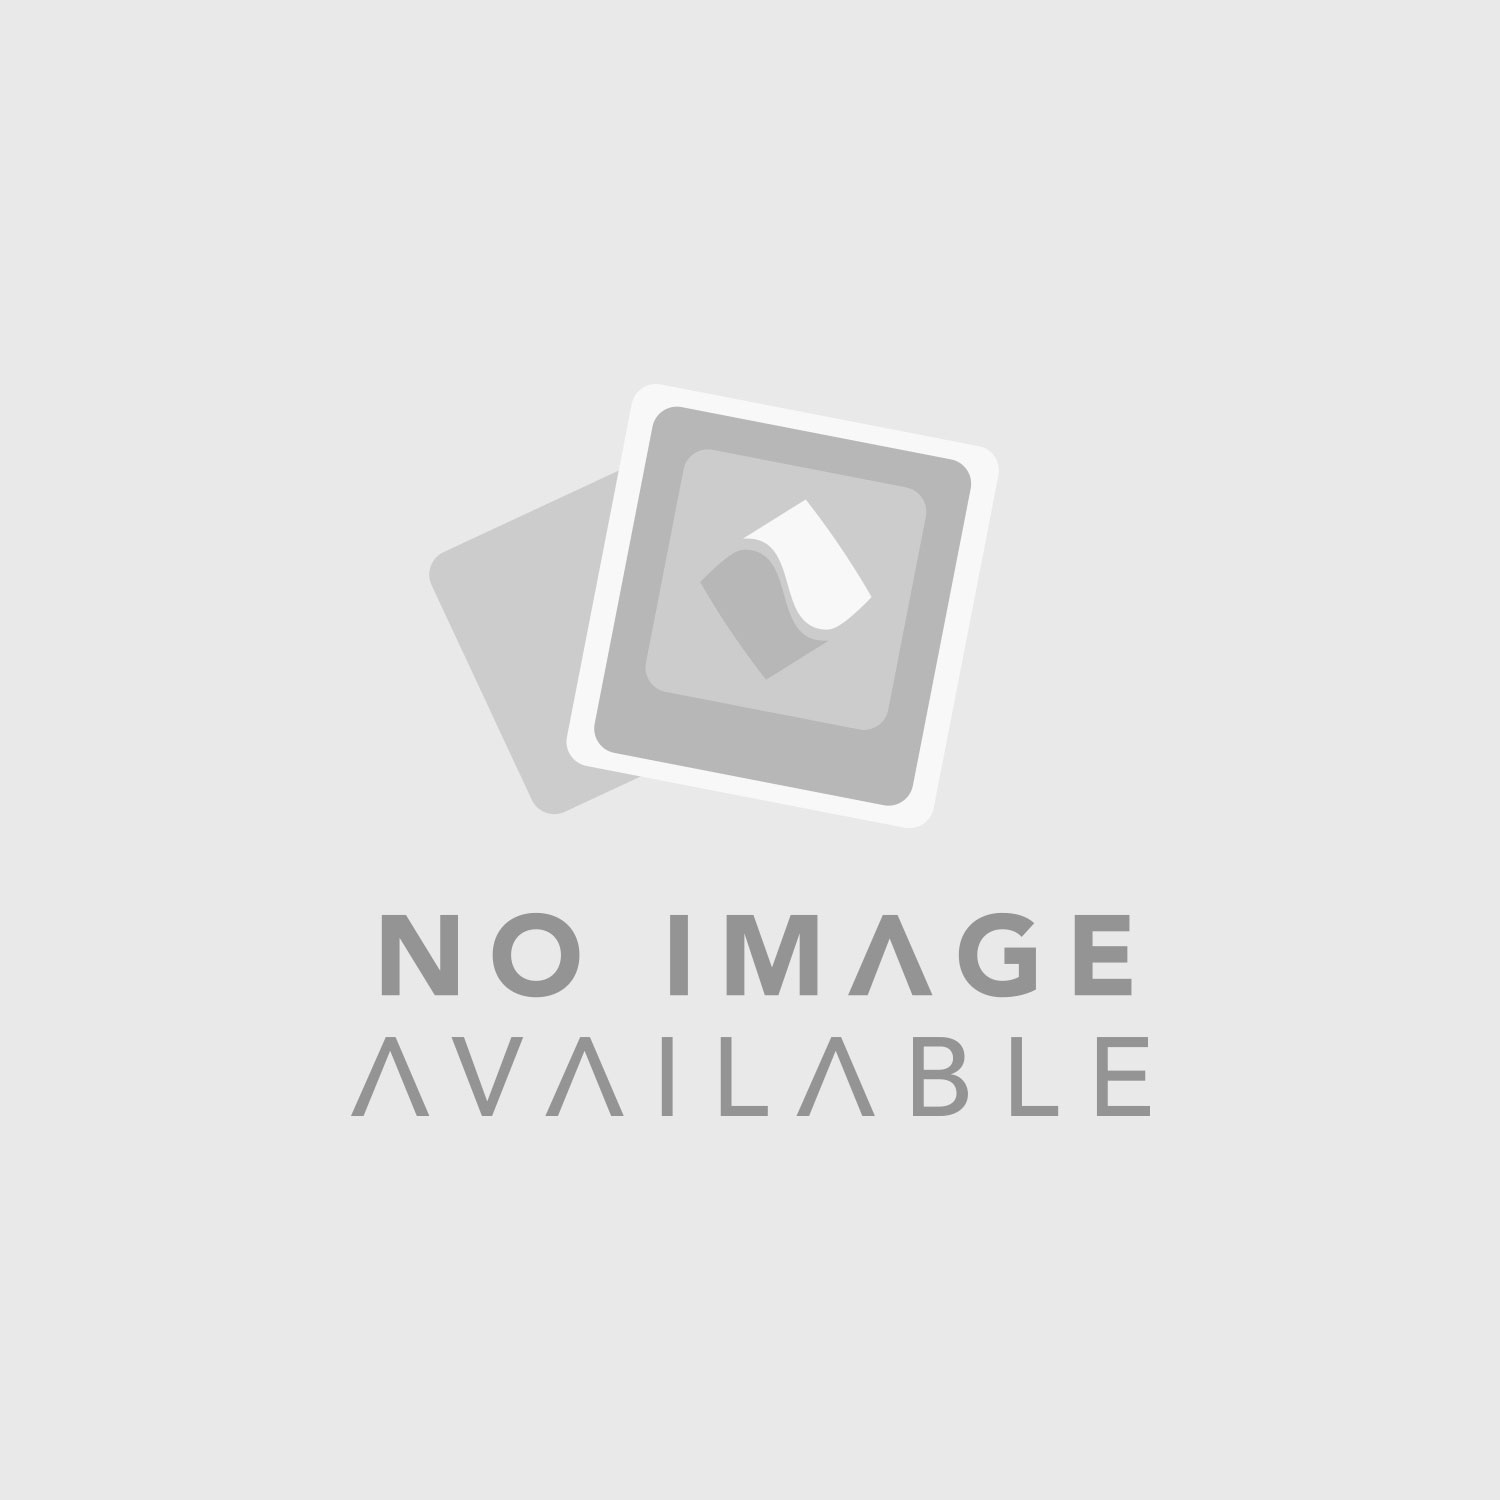 Antari Z-1520 RGB Fog Machine with LED Lights